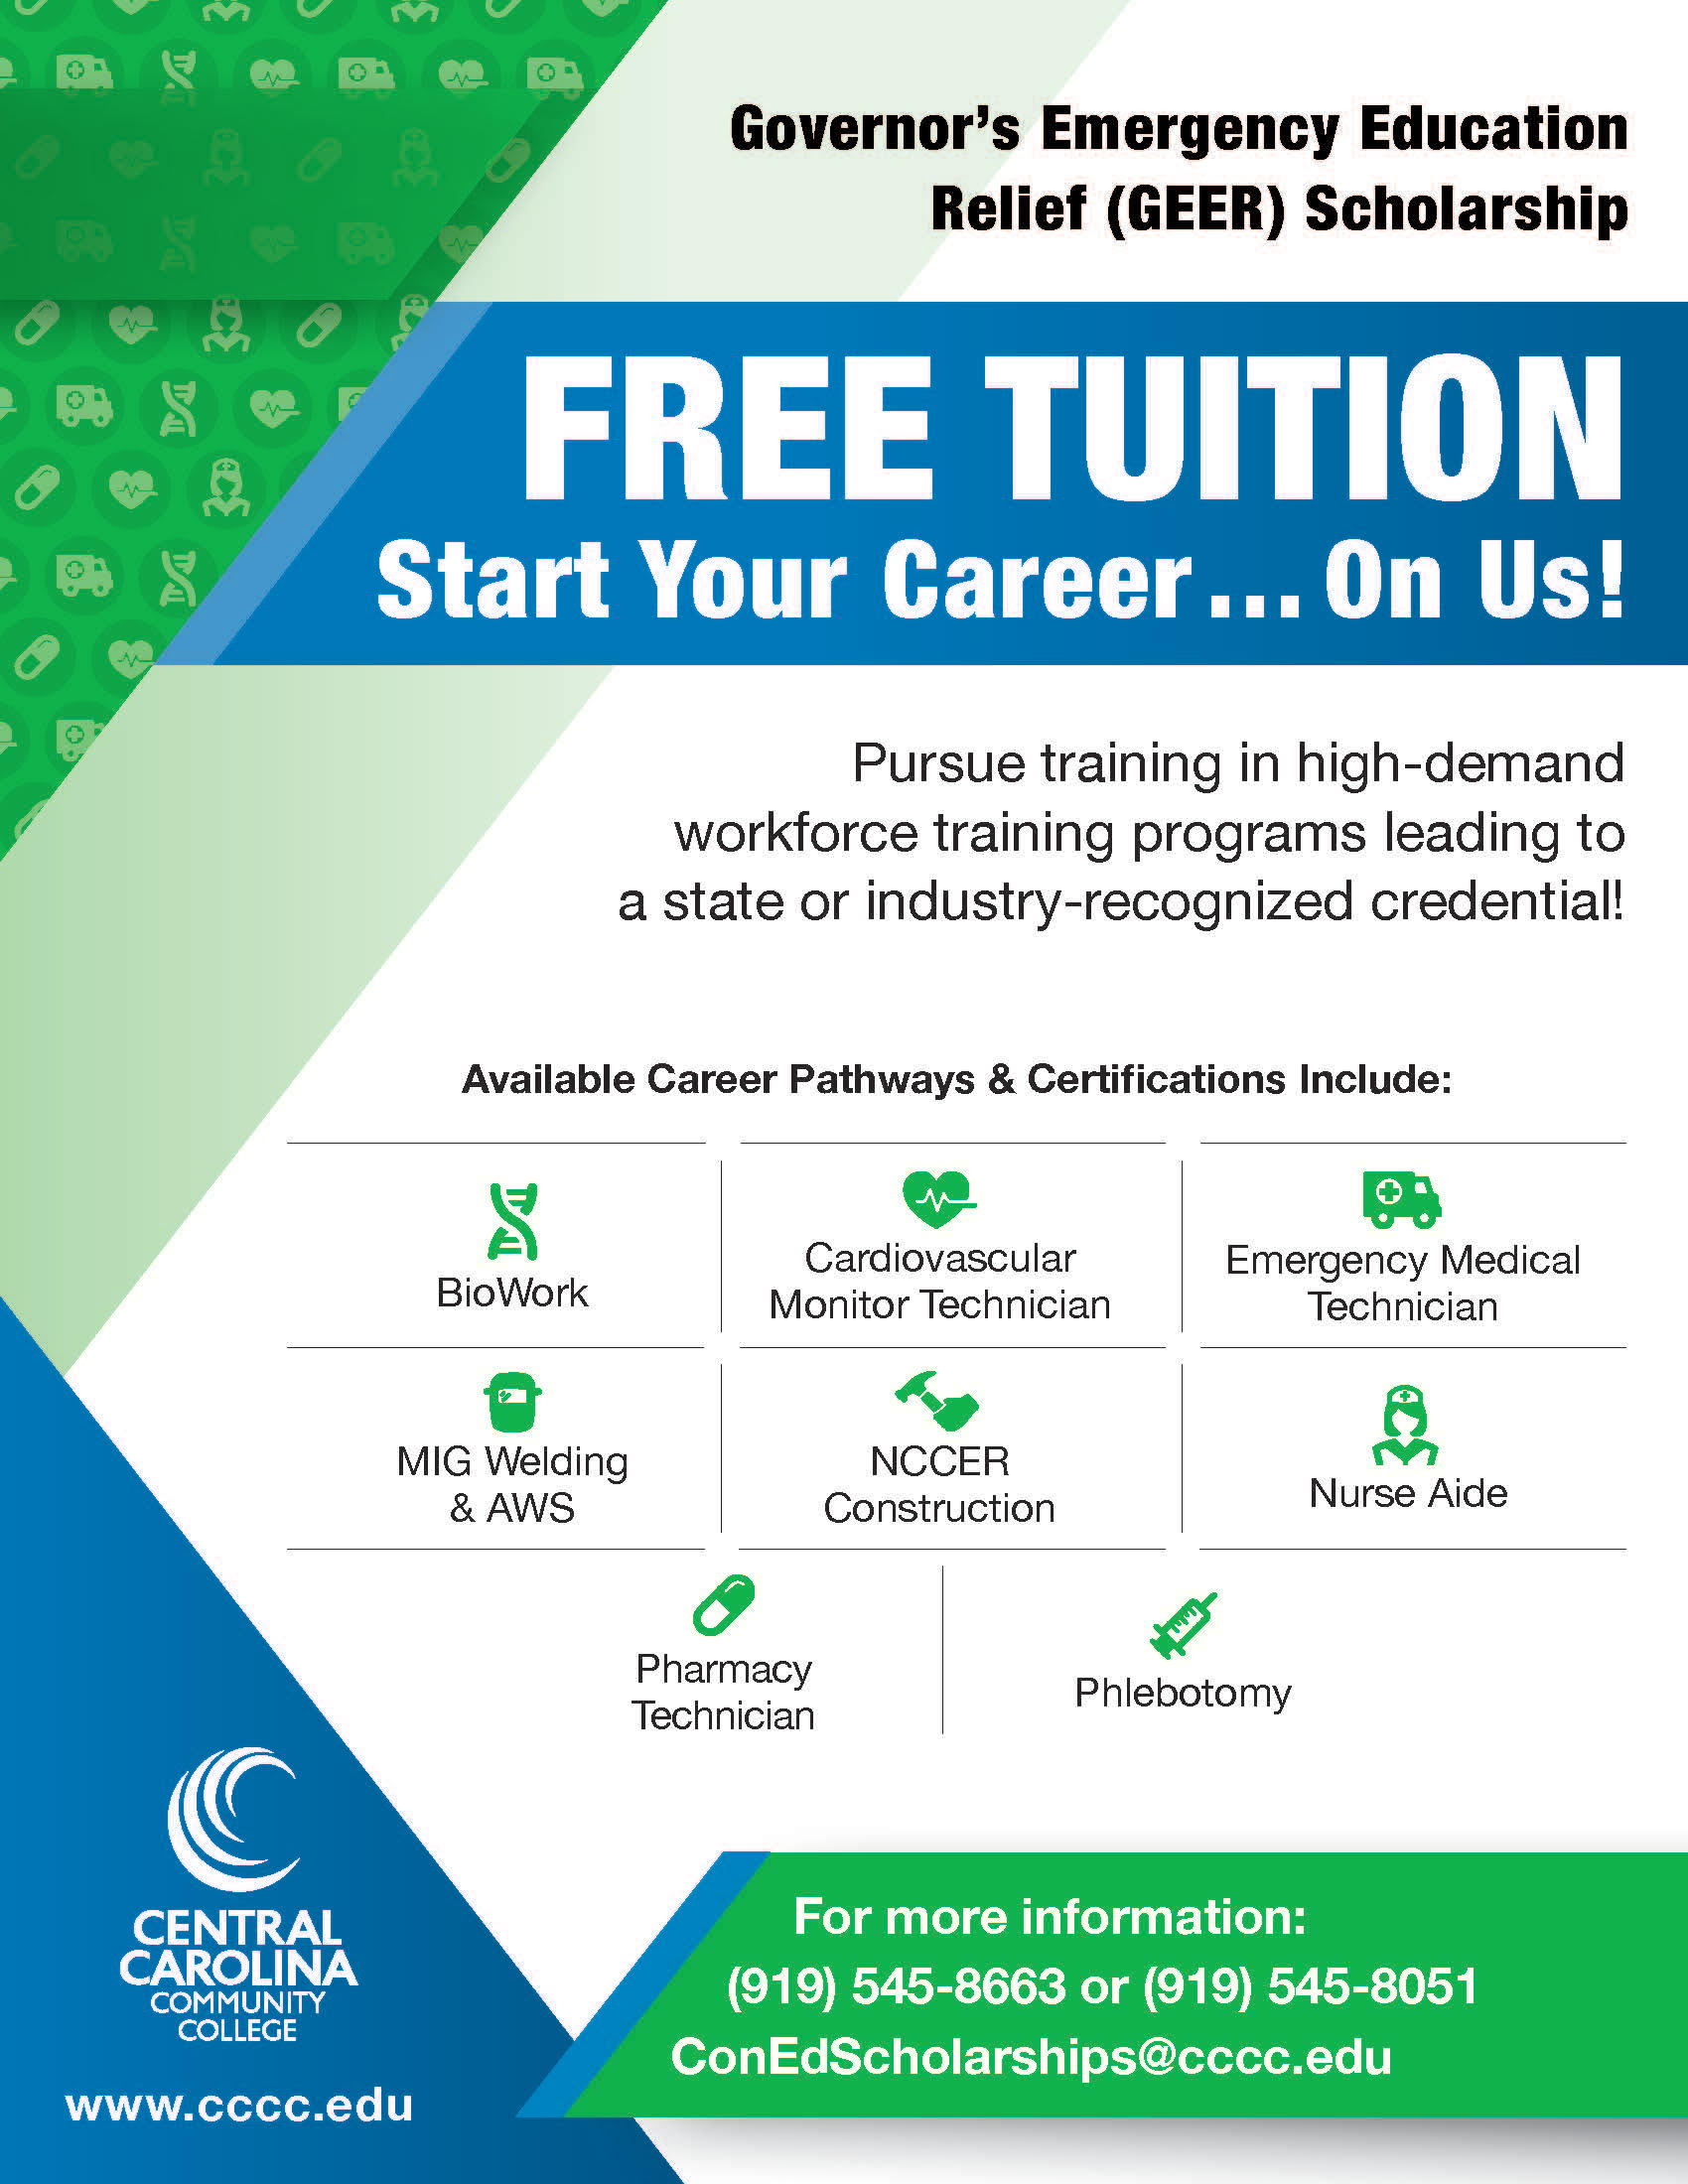 Read the full story, Free tuition for selected workforce training programs at CCCC